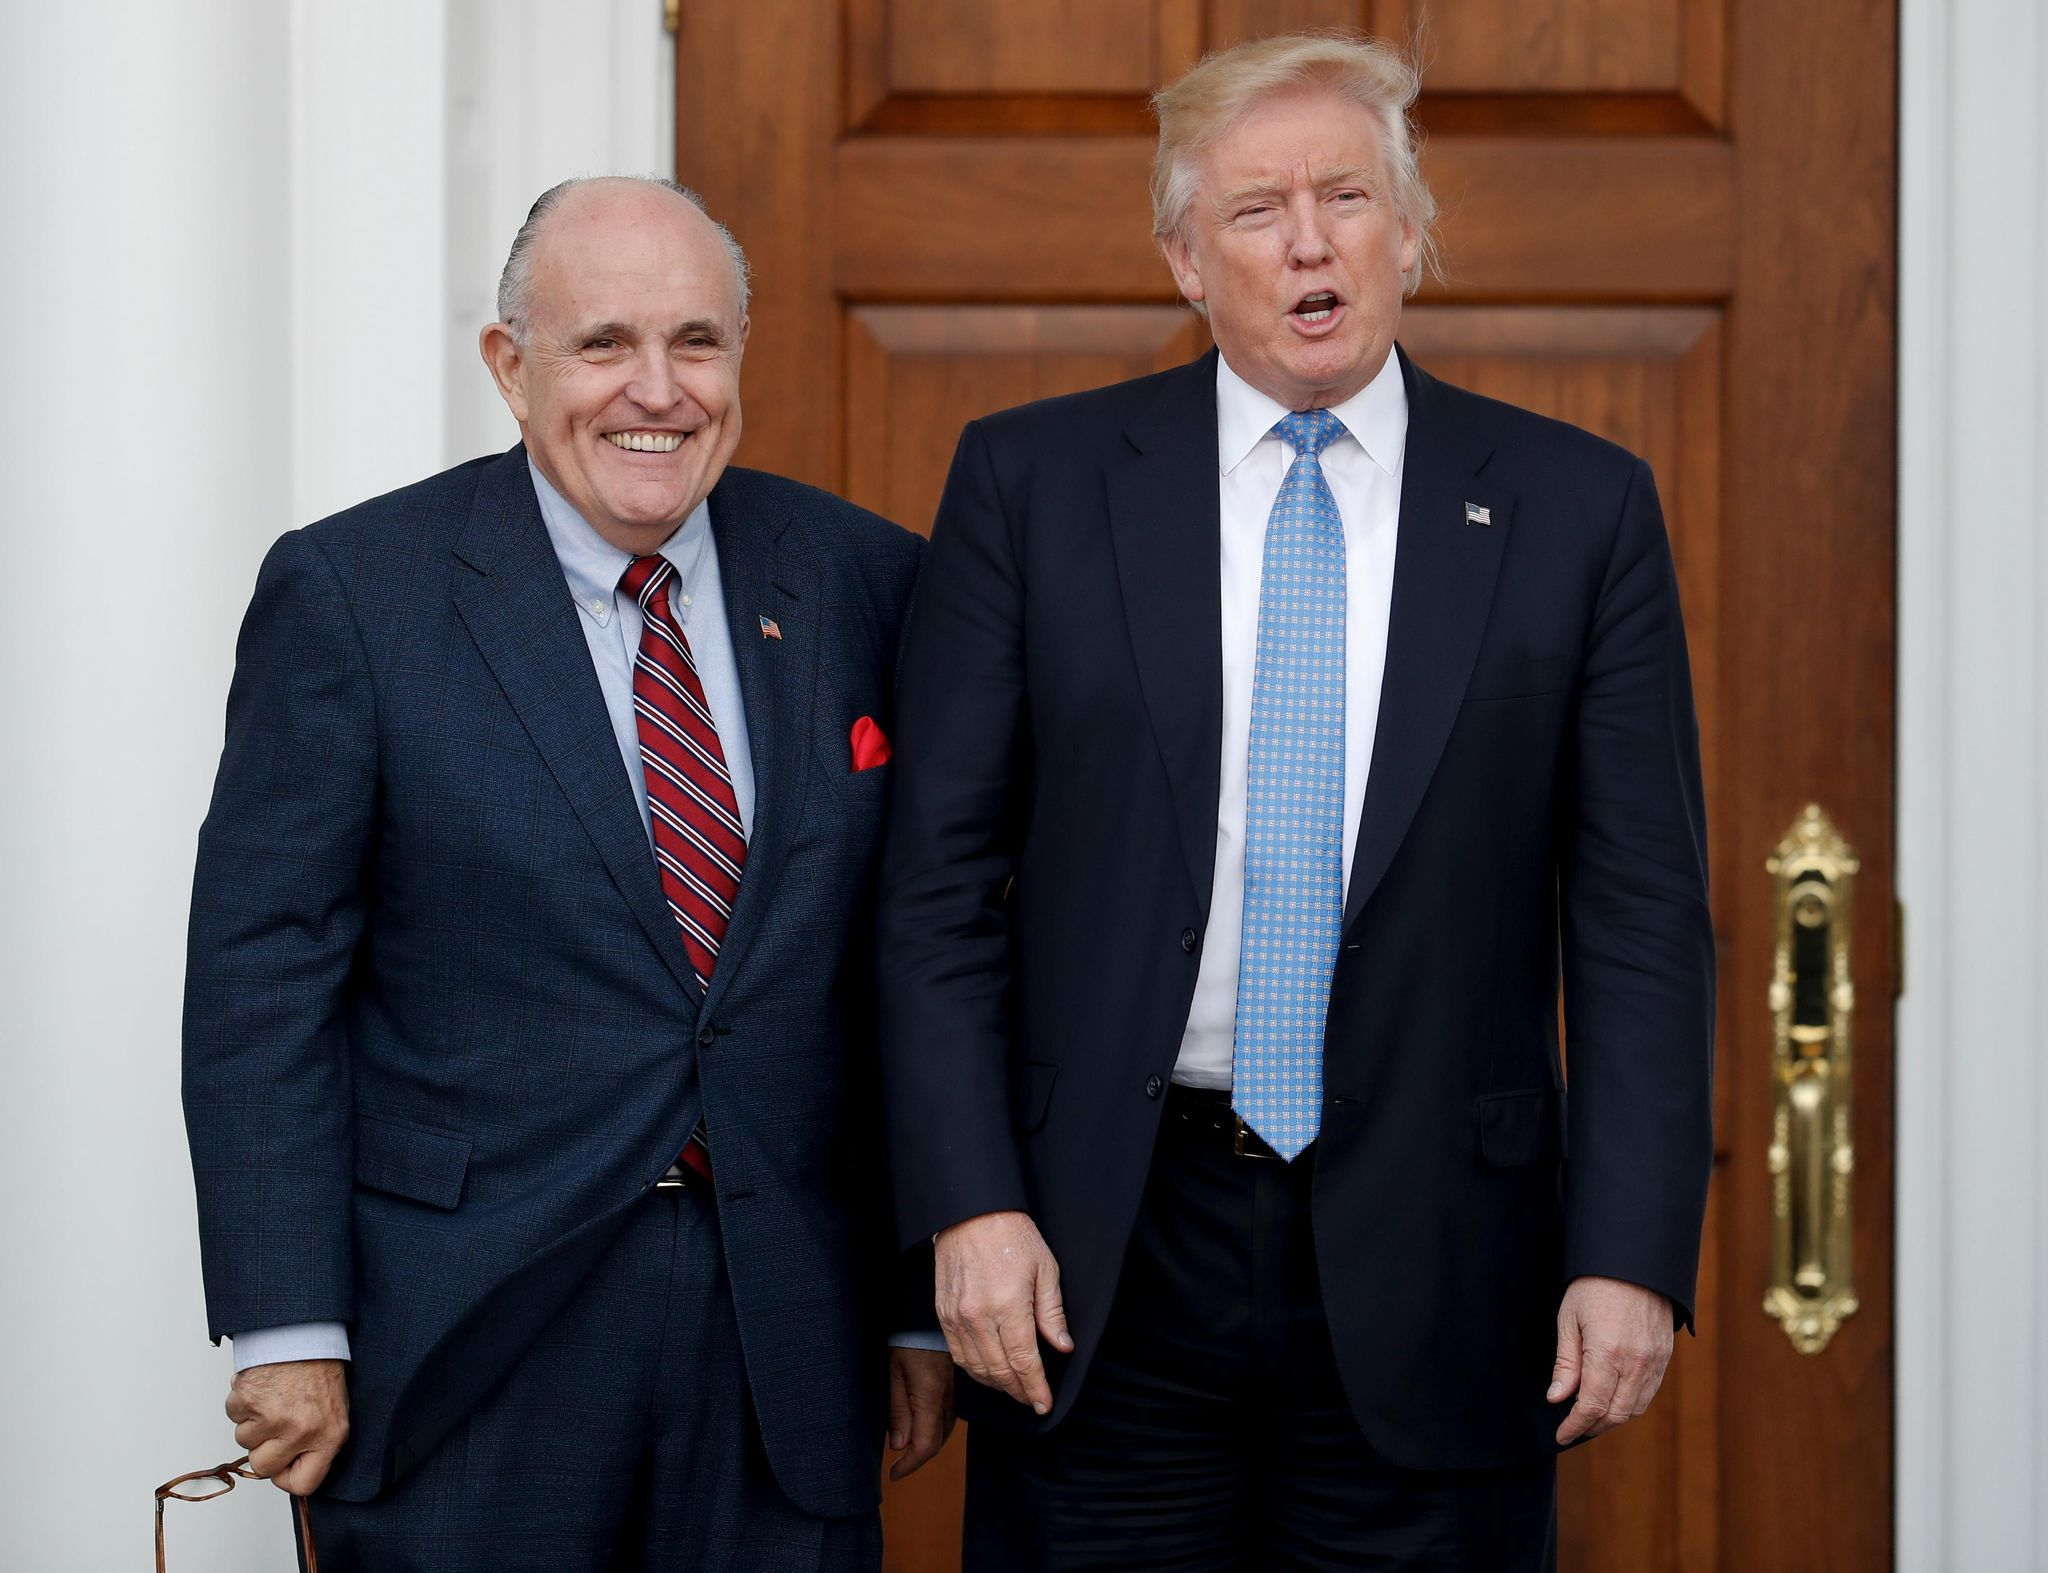 Rudy Giuliani, Donald Trump attorney, says he understands president